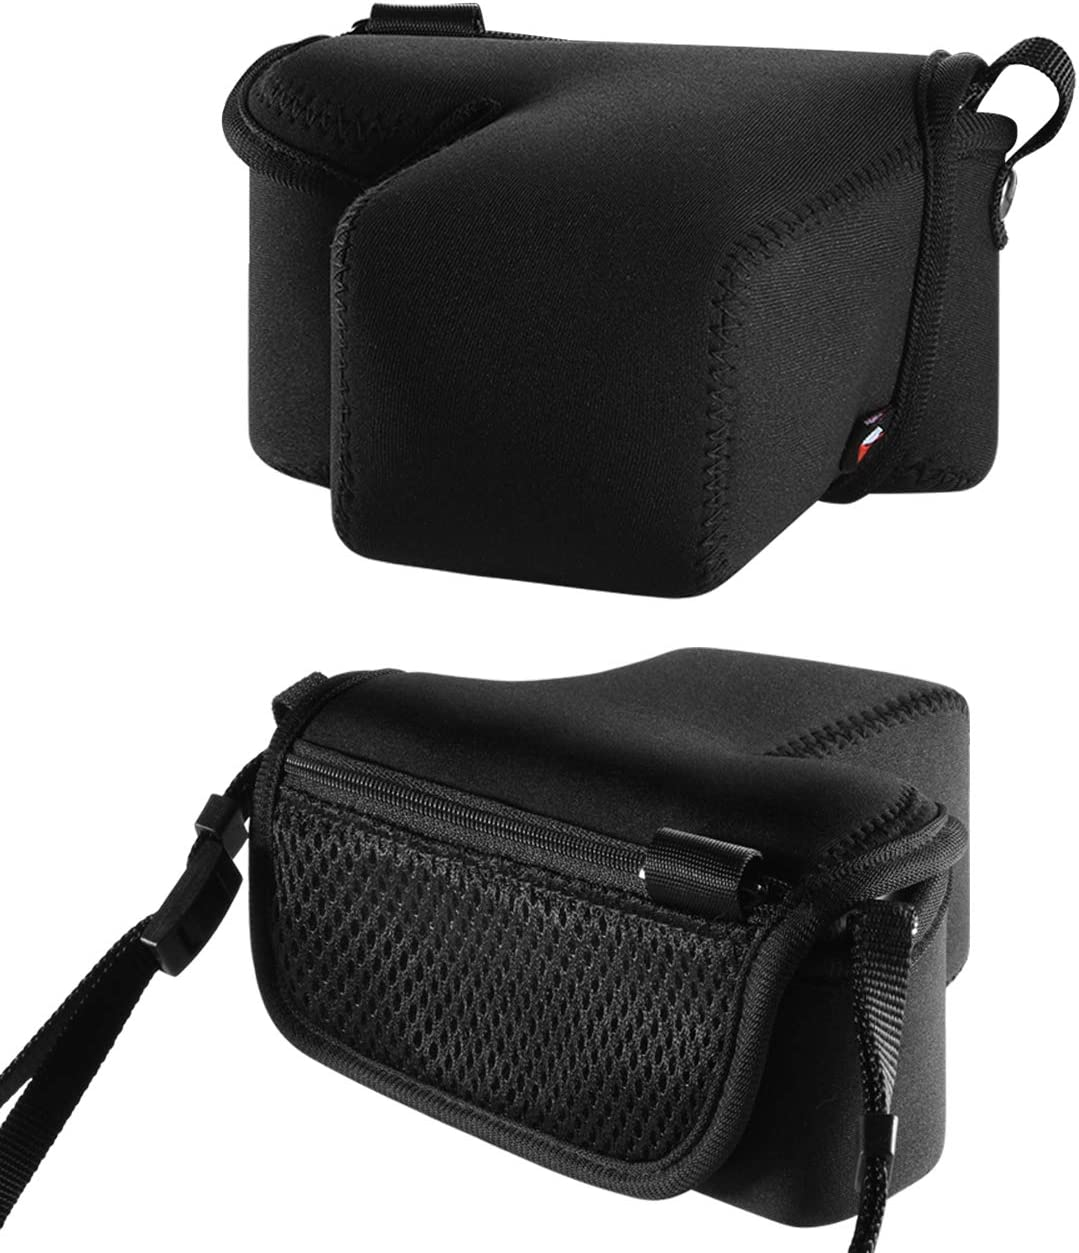 TXEsign Neoprene Protection Camera Case Sleeve Pouch Bag Compatible with Sony Alpha a6500 a6000 Mirrorless Digital Camera with 50mm Lens Accessories Storage Bag